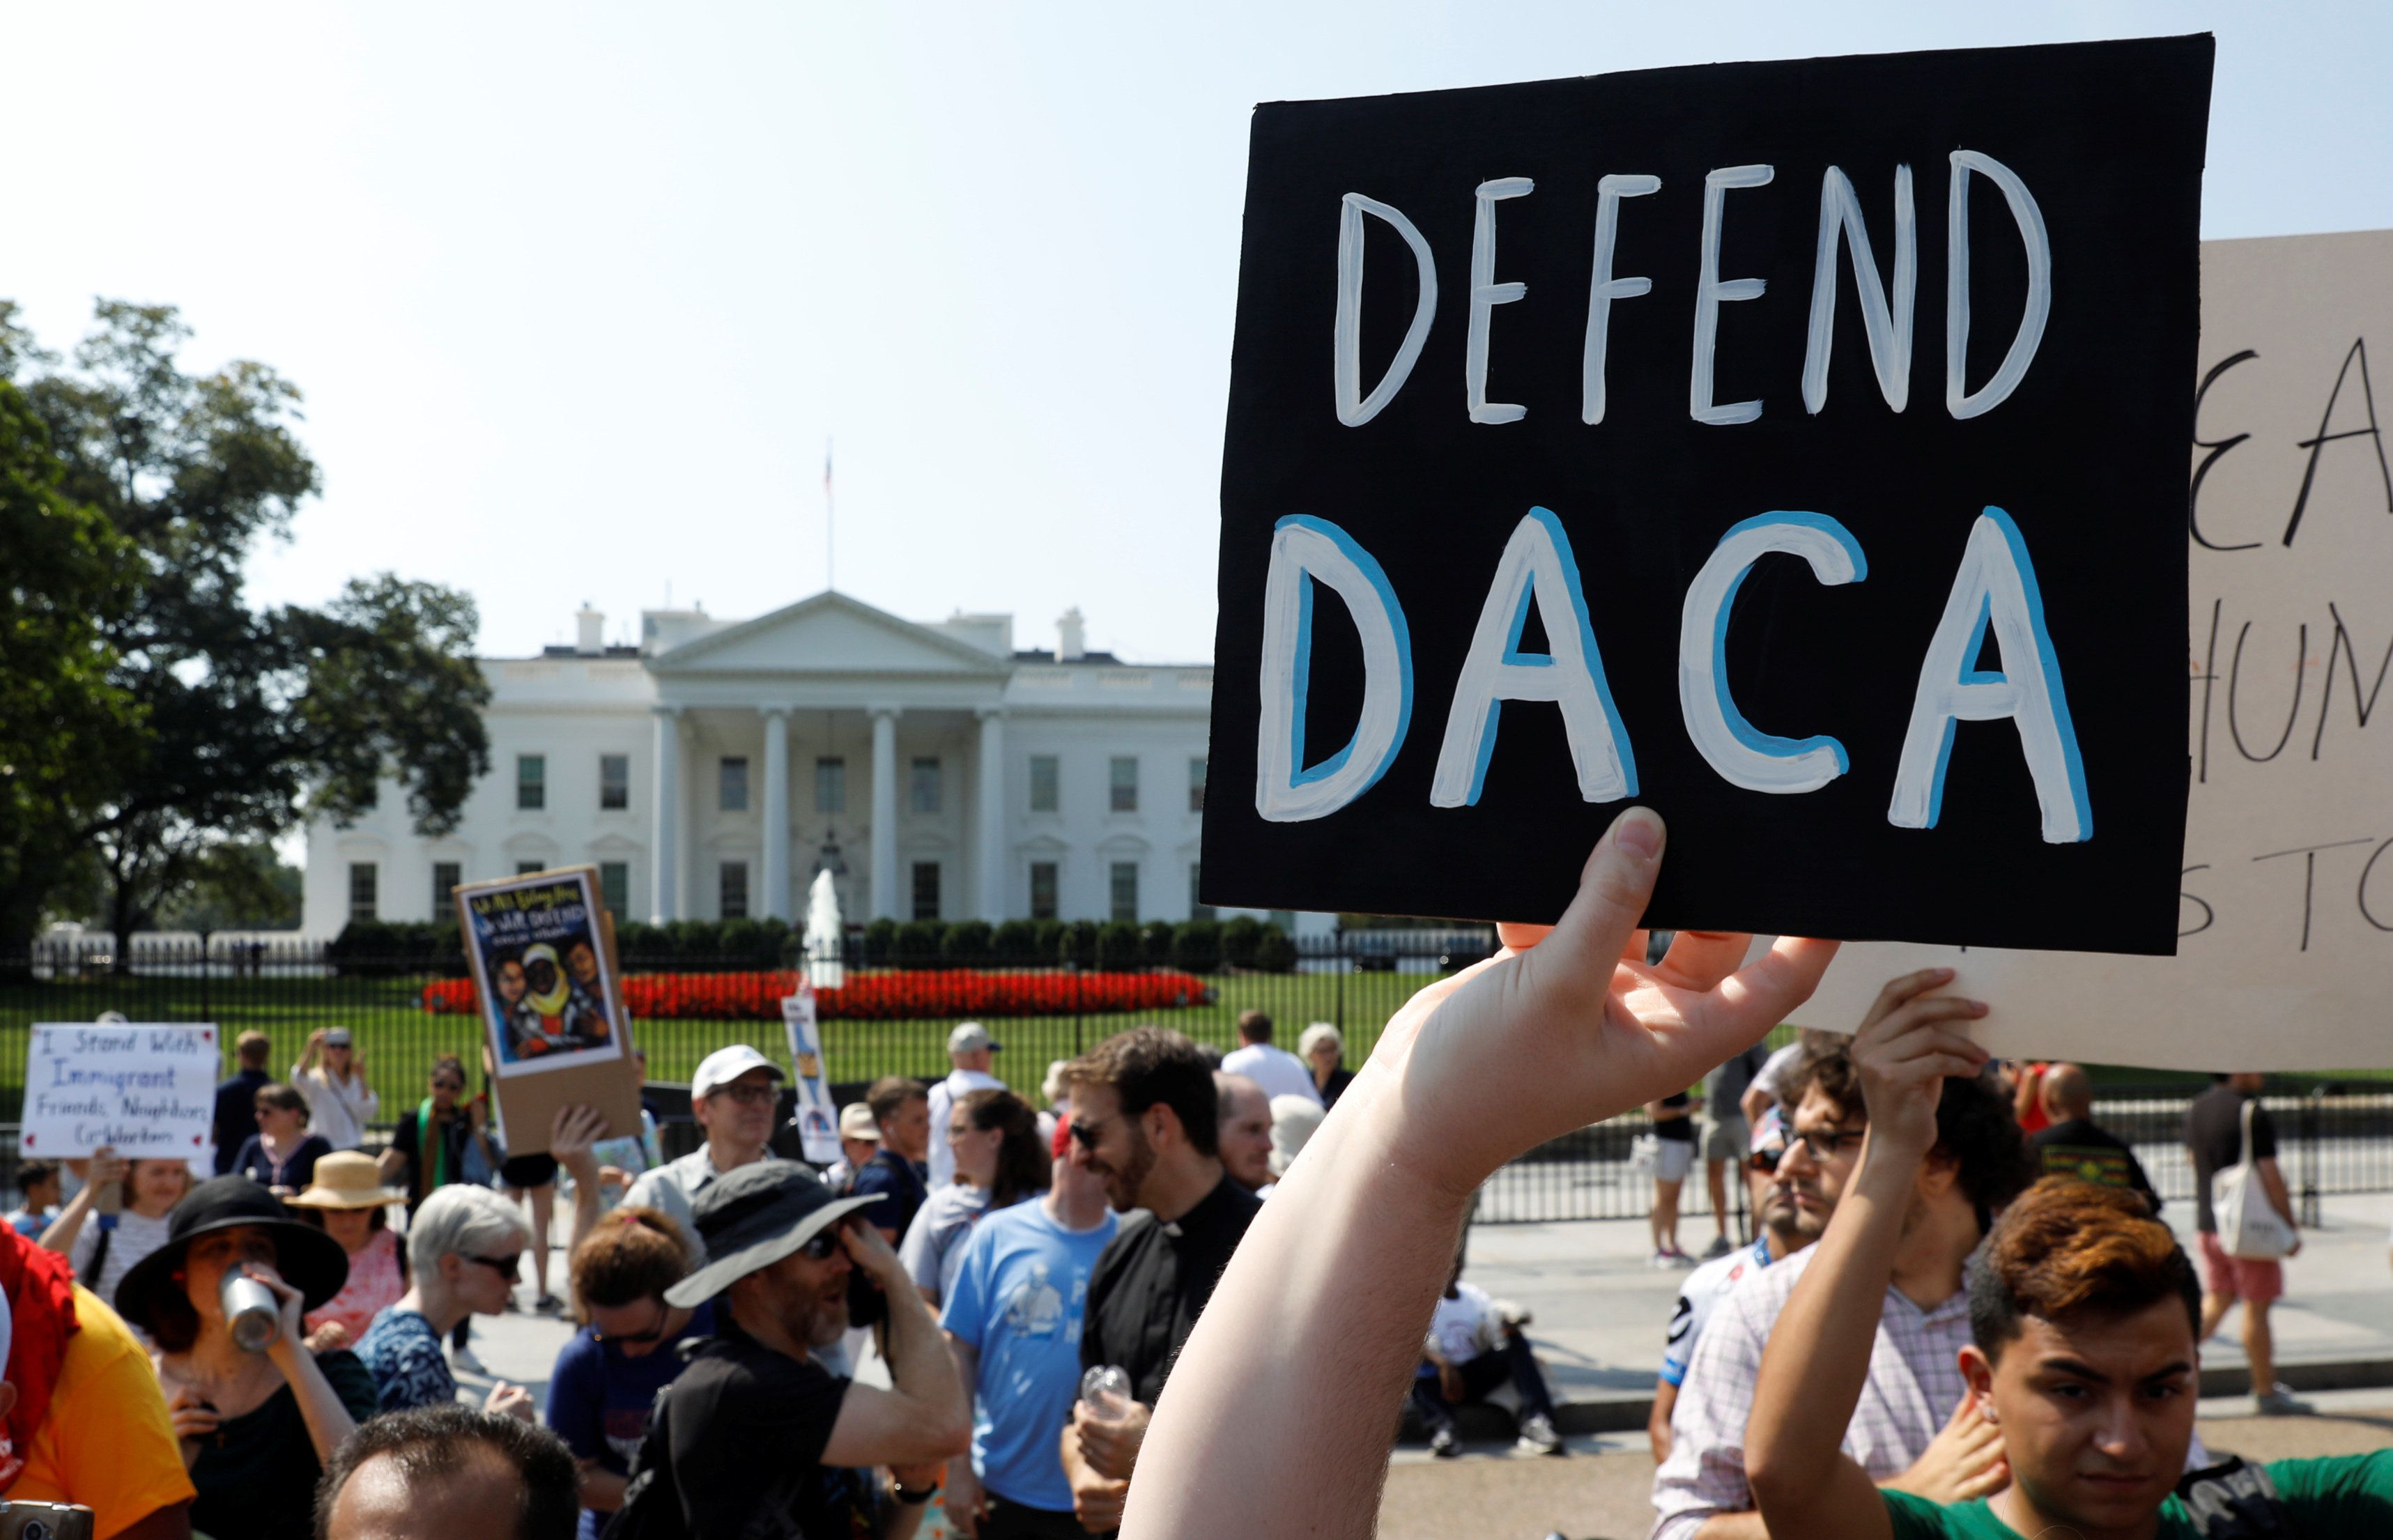 It's time for a permanent solution to protect Dreamers